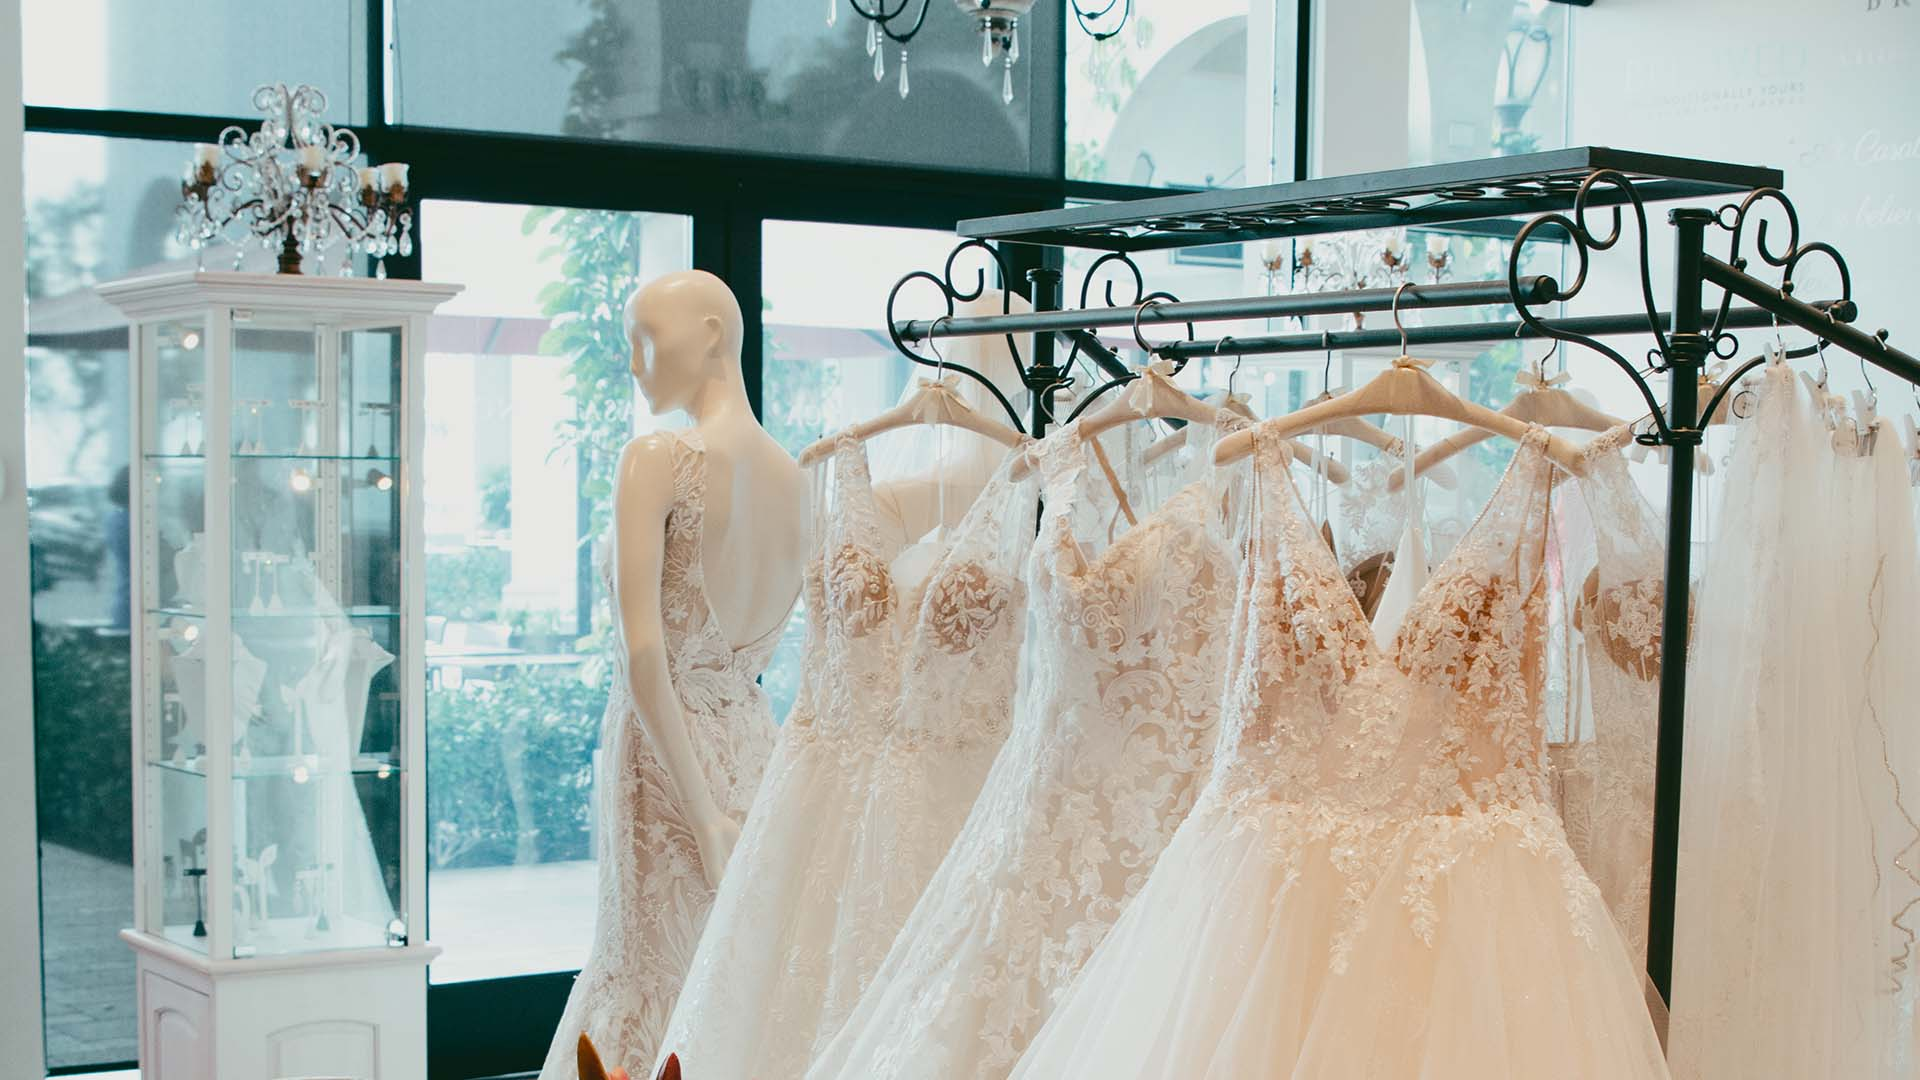 Casablanca Bridal. Wedding dresses at the hanger